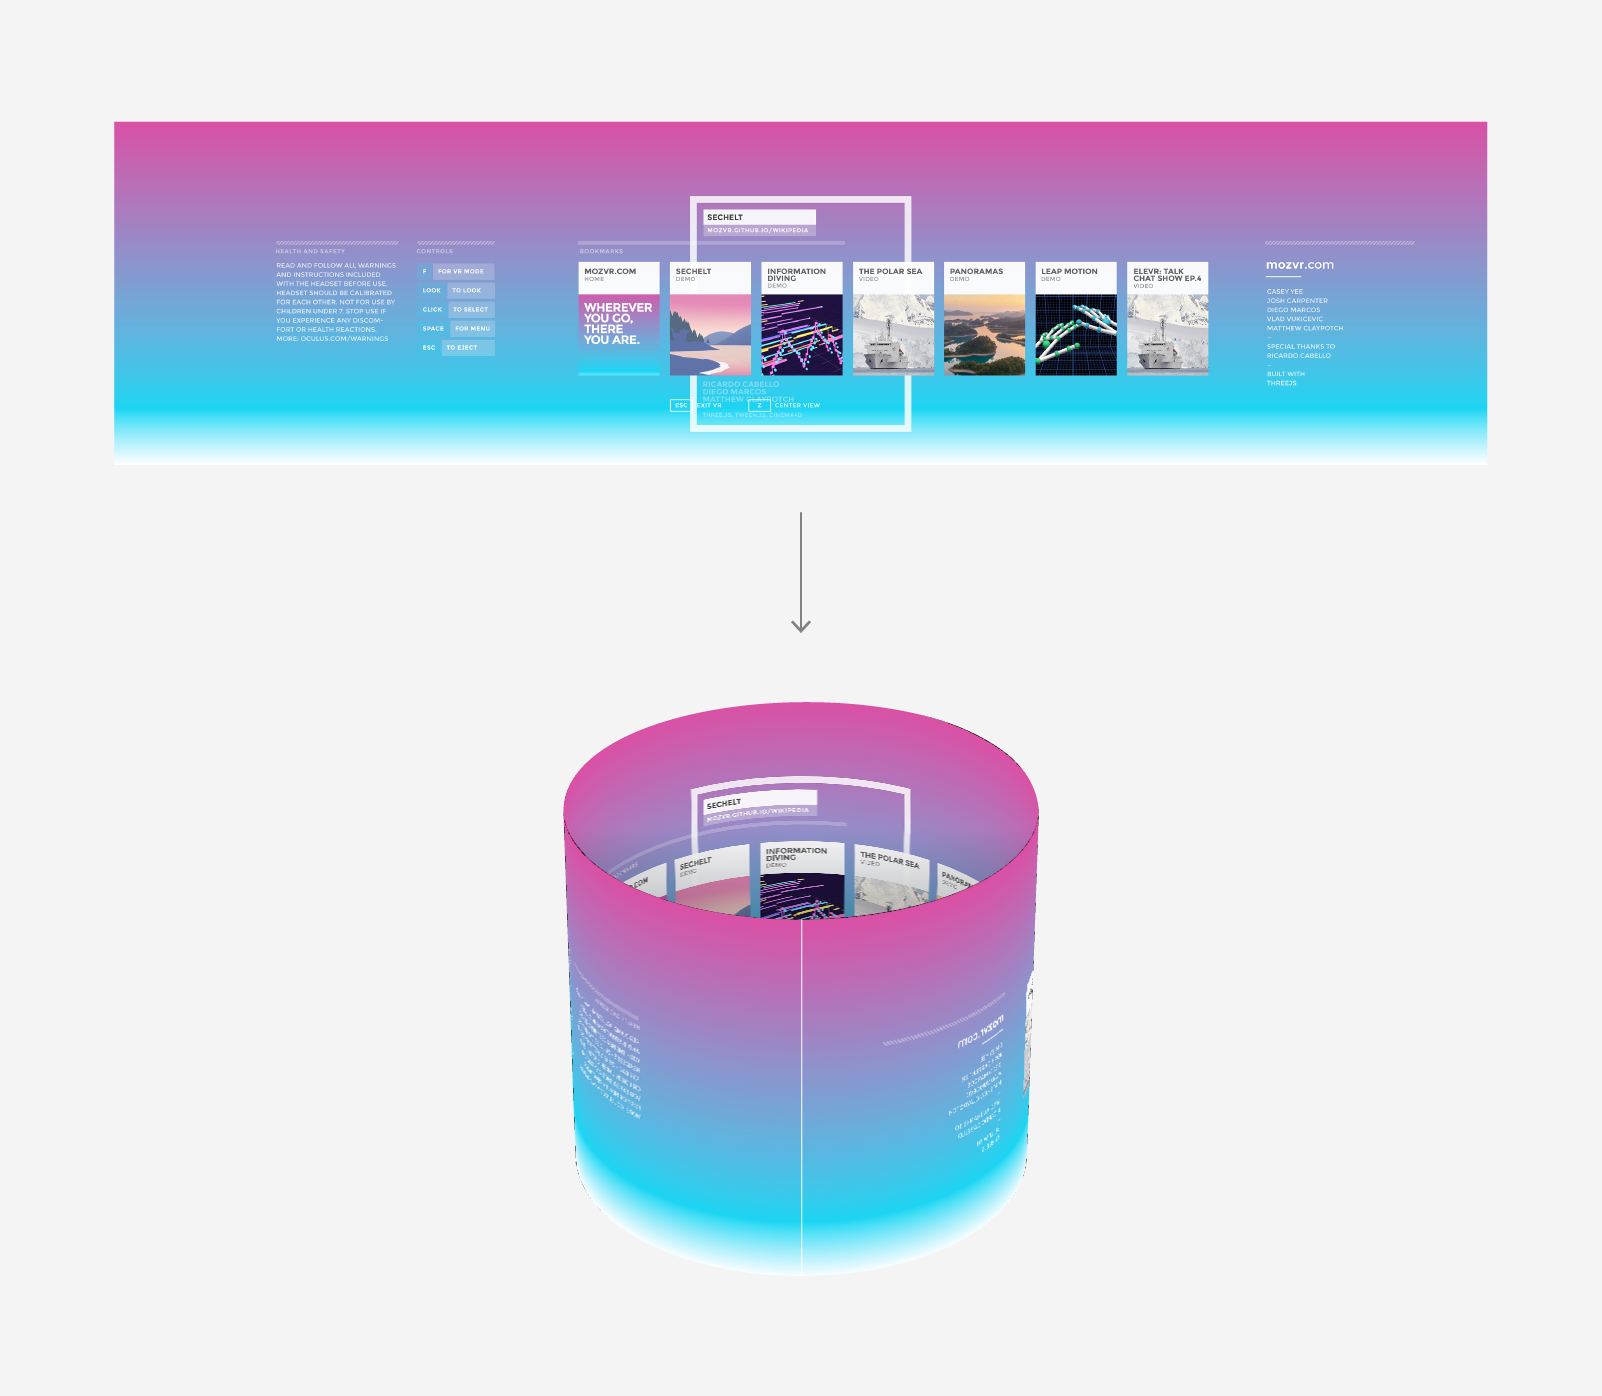 Top: our Illustrator layout. Bottom: our layout mapped onto a WebGL cylinder.